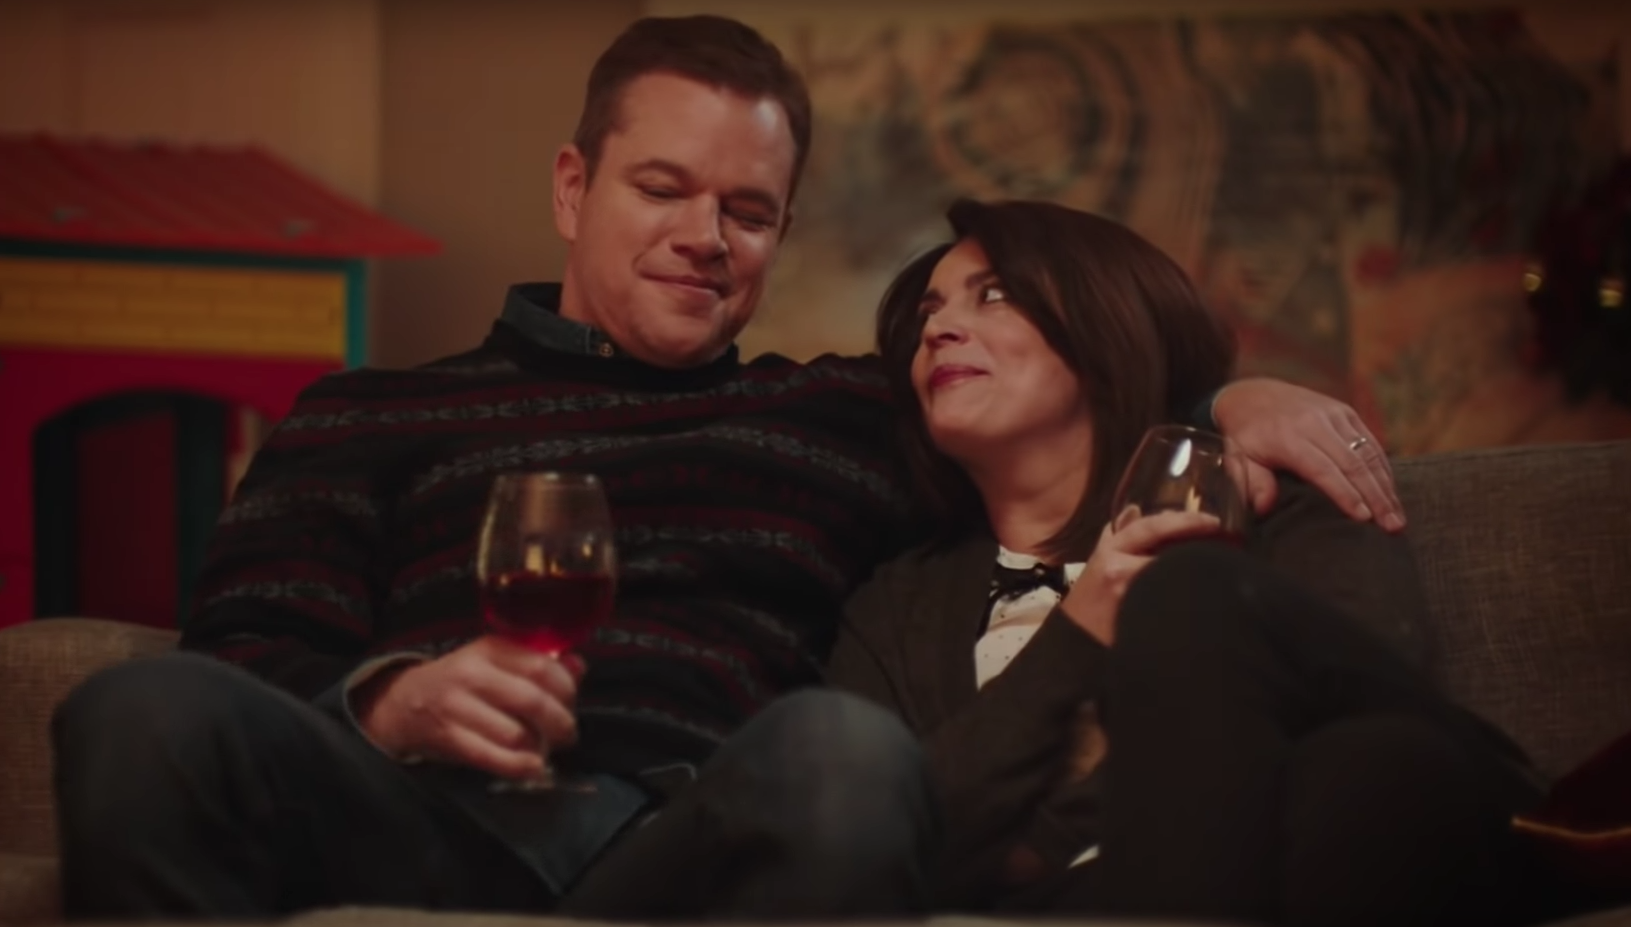 Snl Christmas Special 2019.Matt Damon S Snl Skit About Christmas With Kids Is The Truth